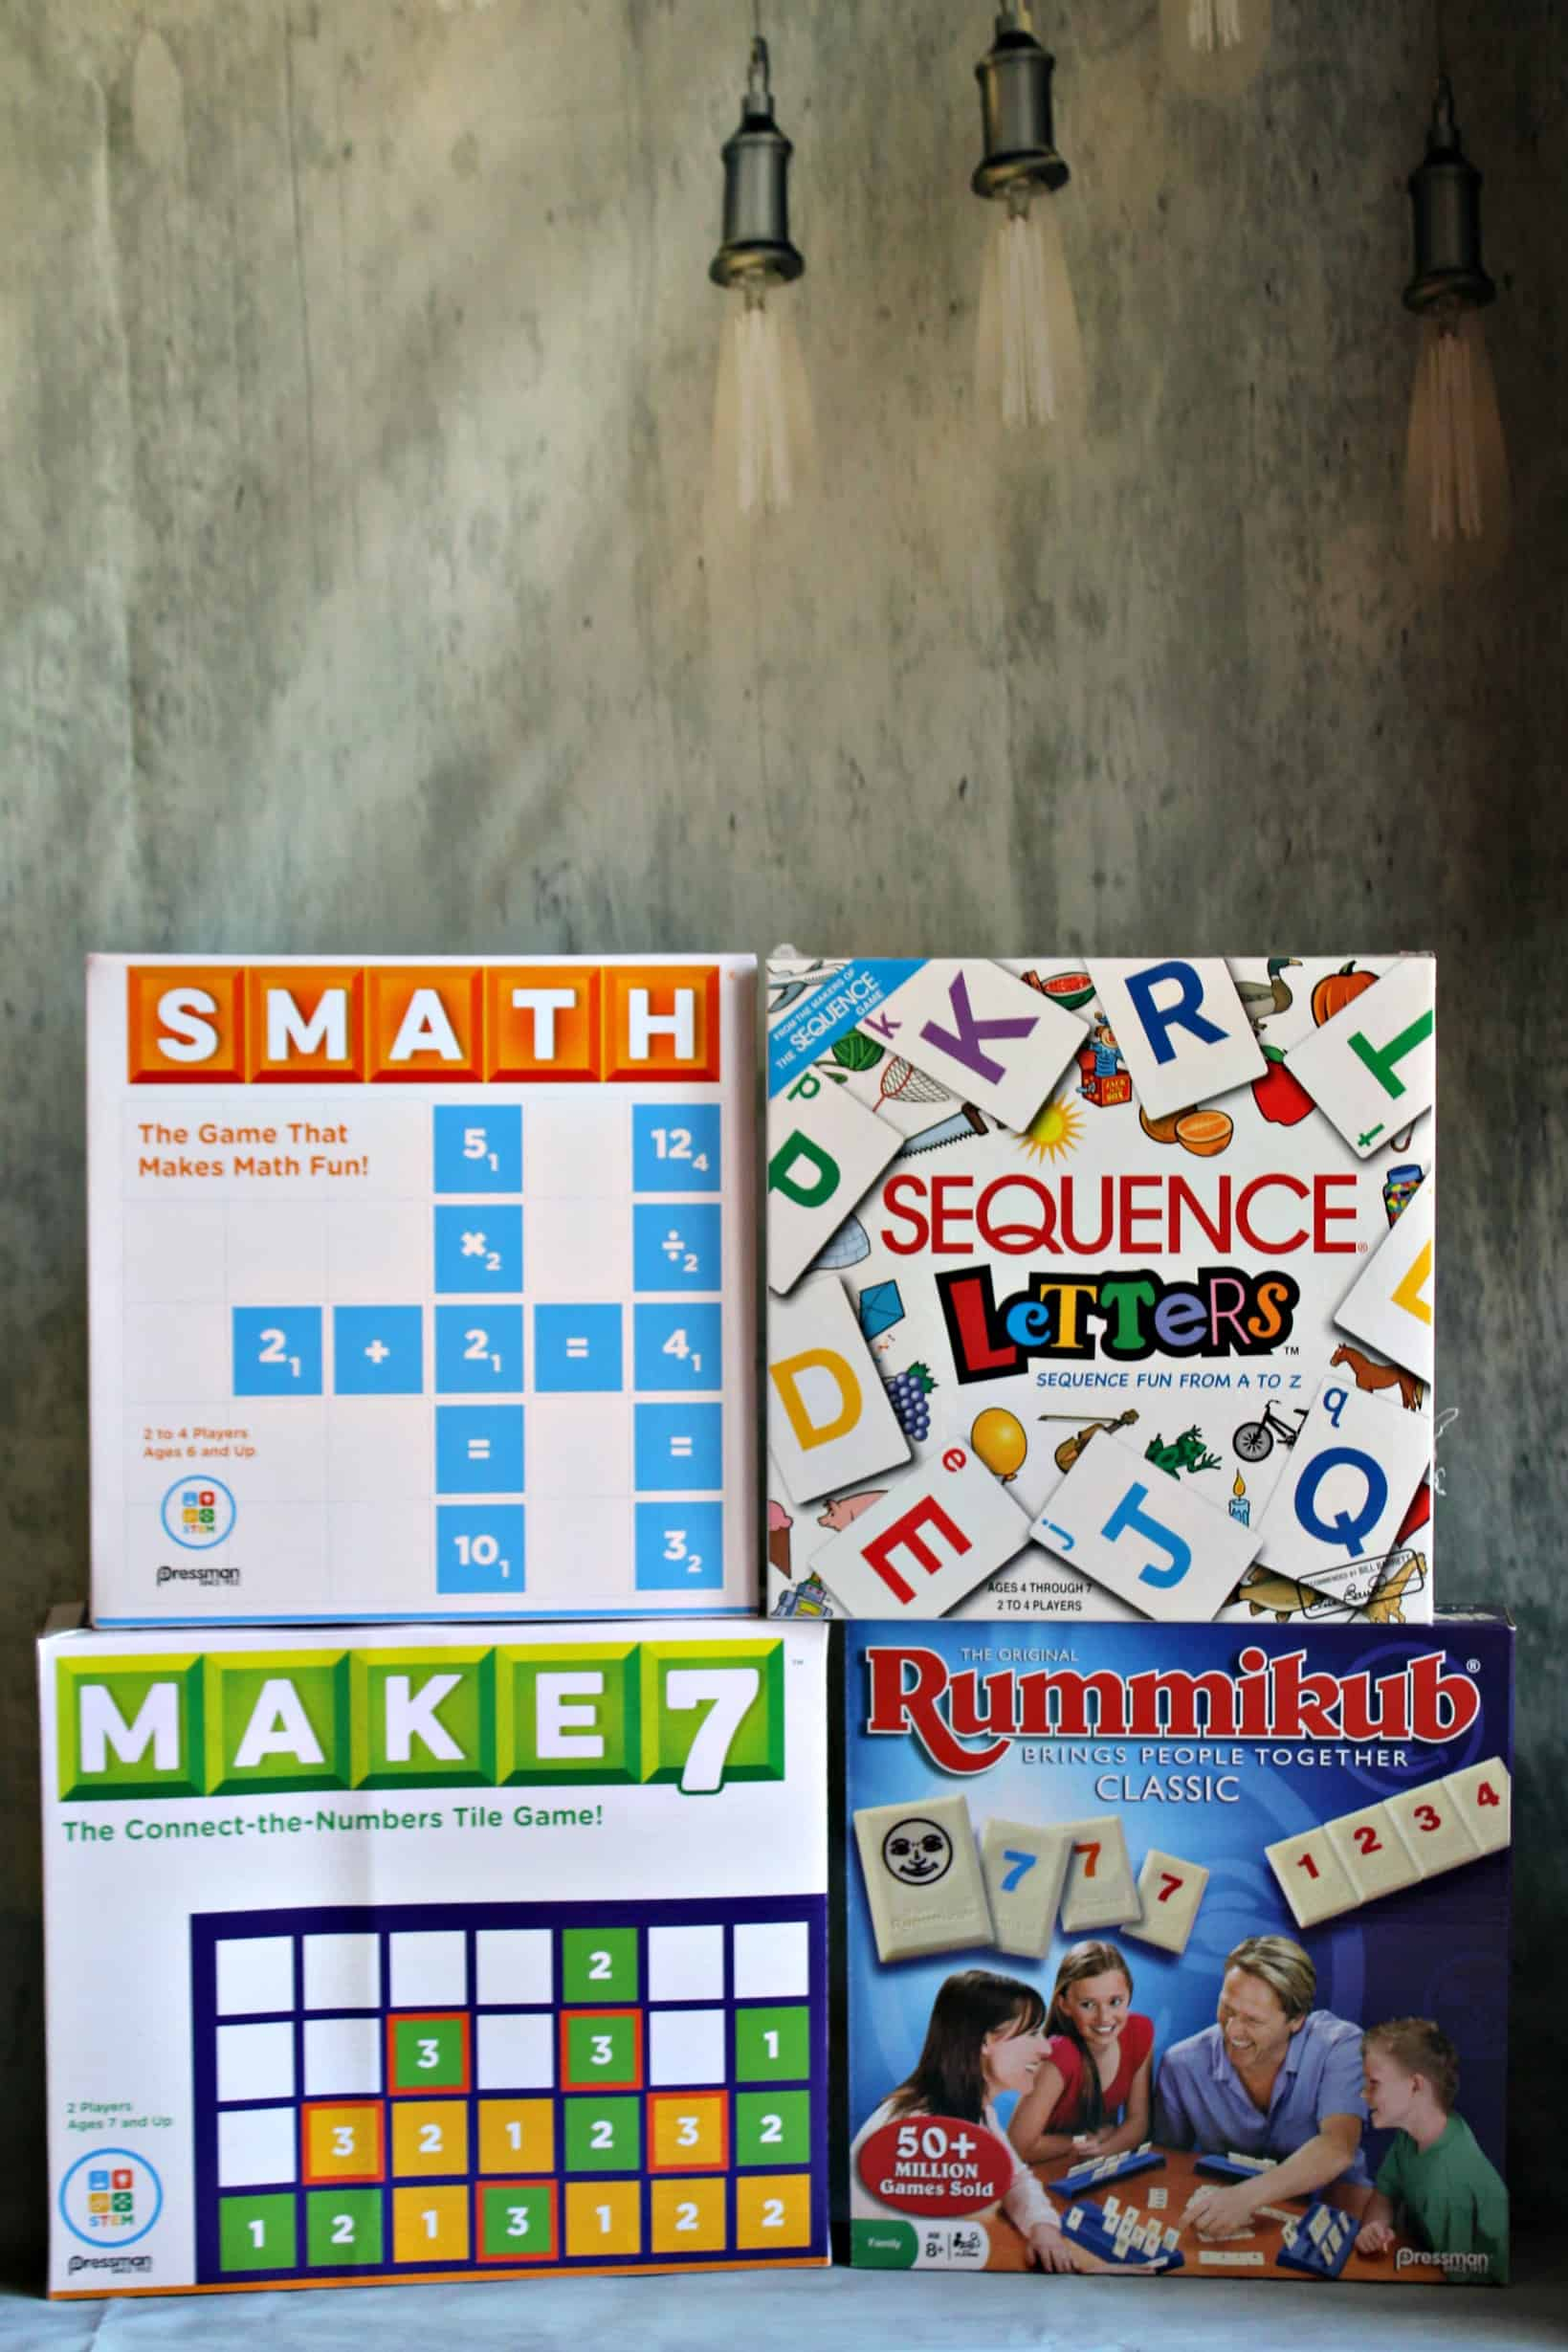 Smart Games from Pressman Games